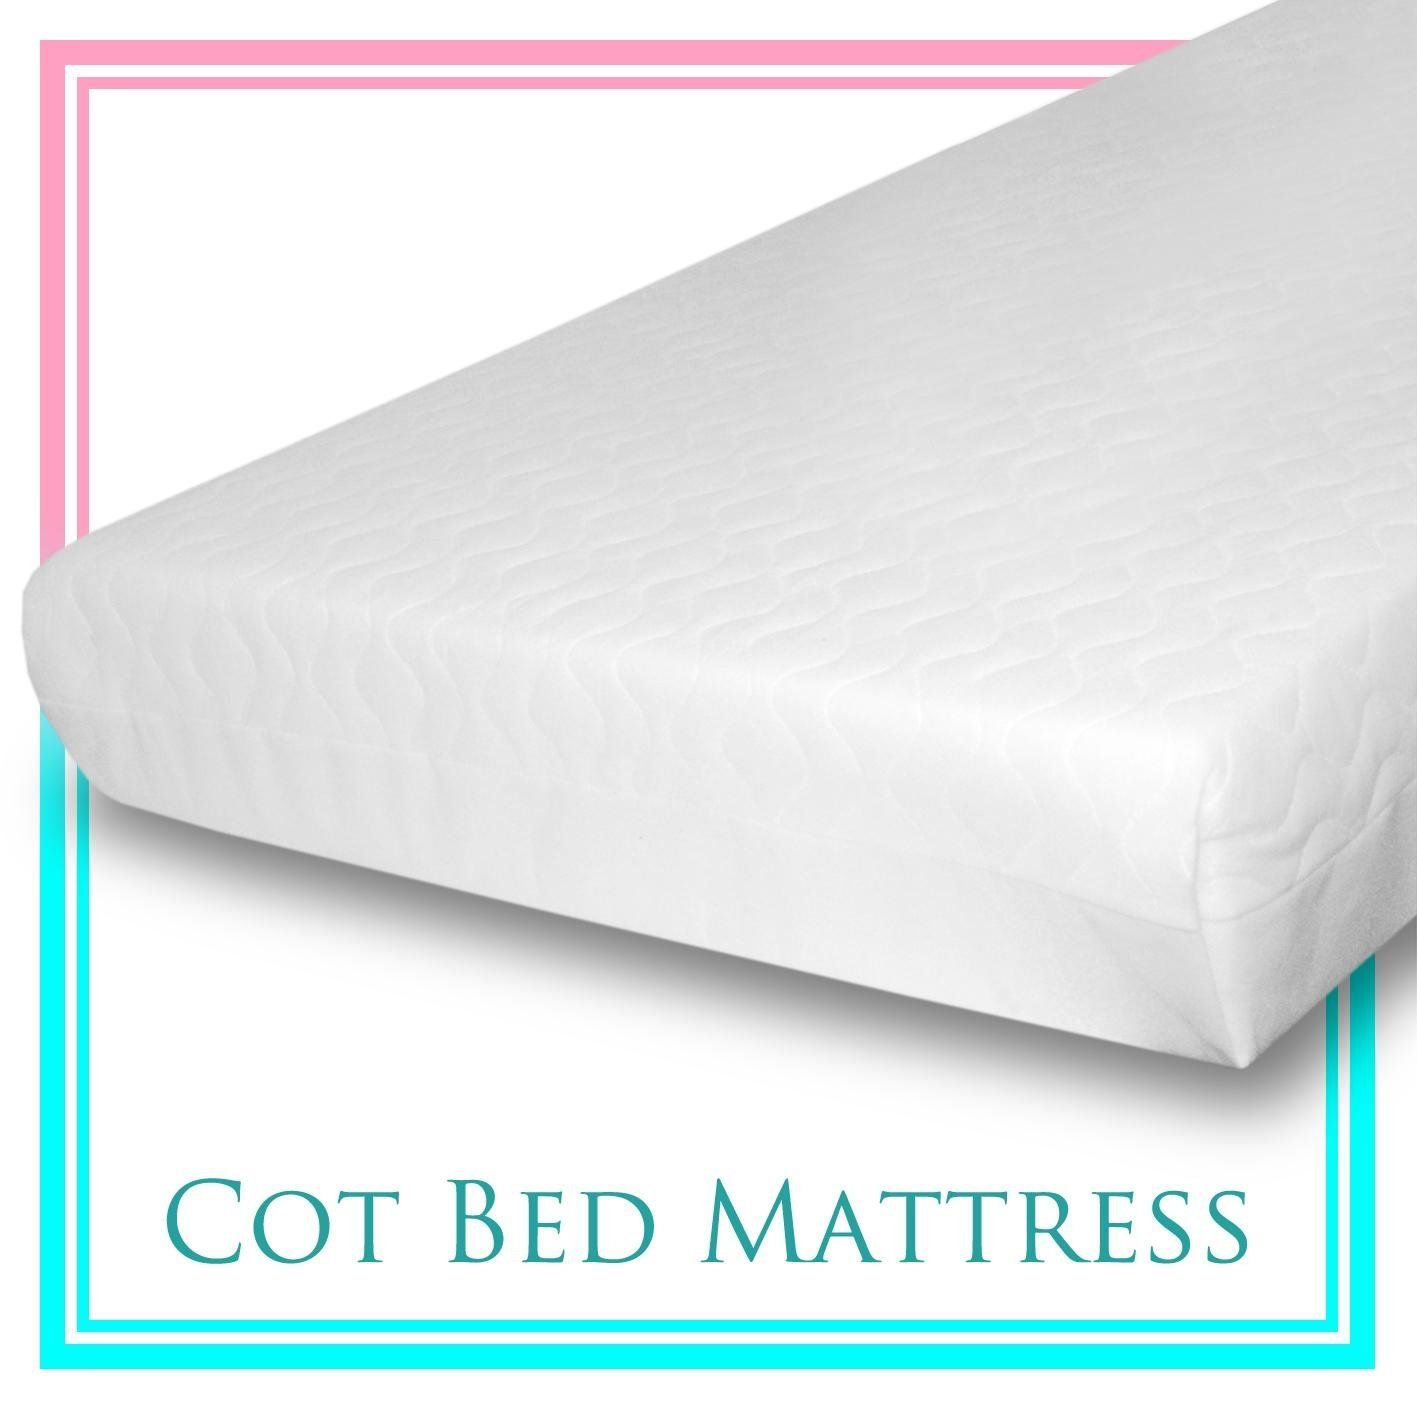 How To Choose Travel Cot Mattress Baby Travel Cot Mattress 120 X 60 X Cot Mattress Mattress Cot Bed Mattress